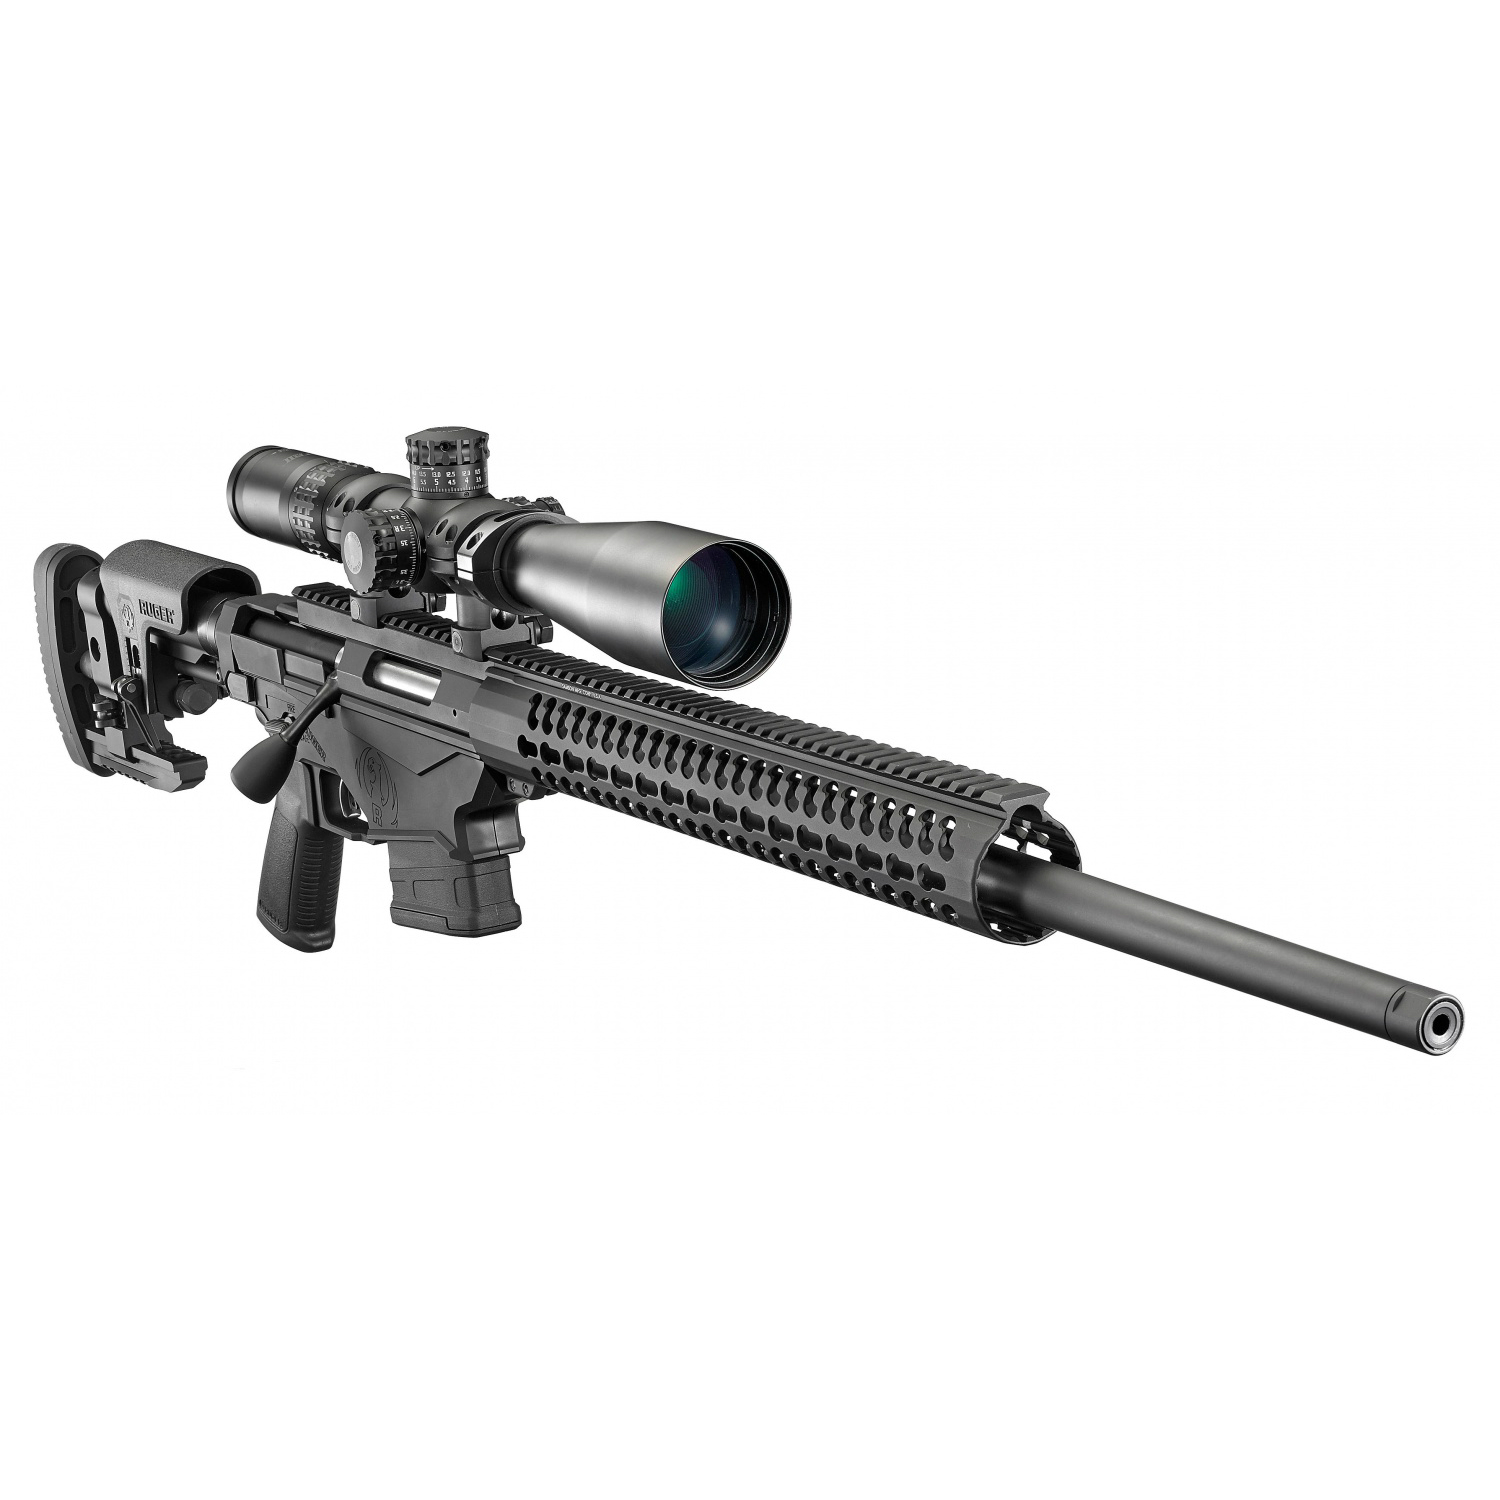 Ruger Precision Bolt Action Rifle .243 Win